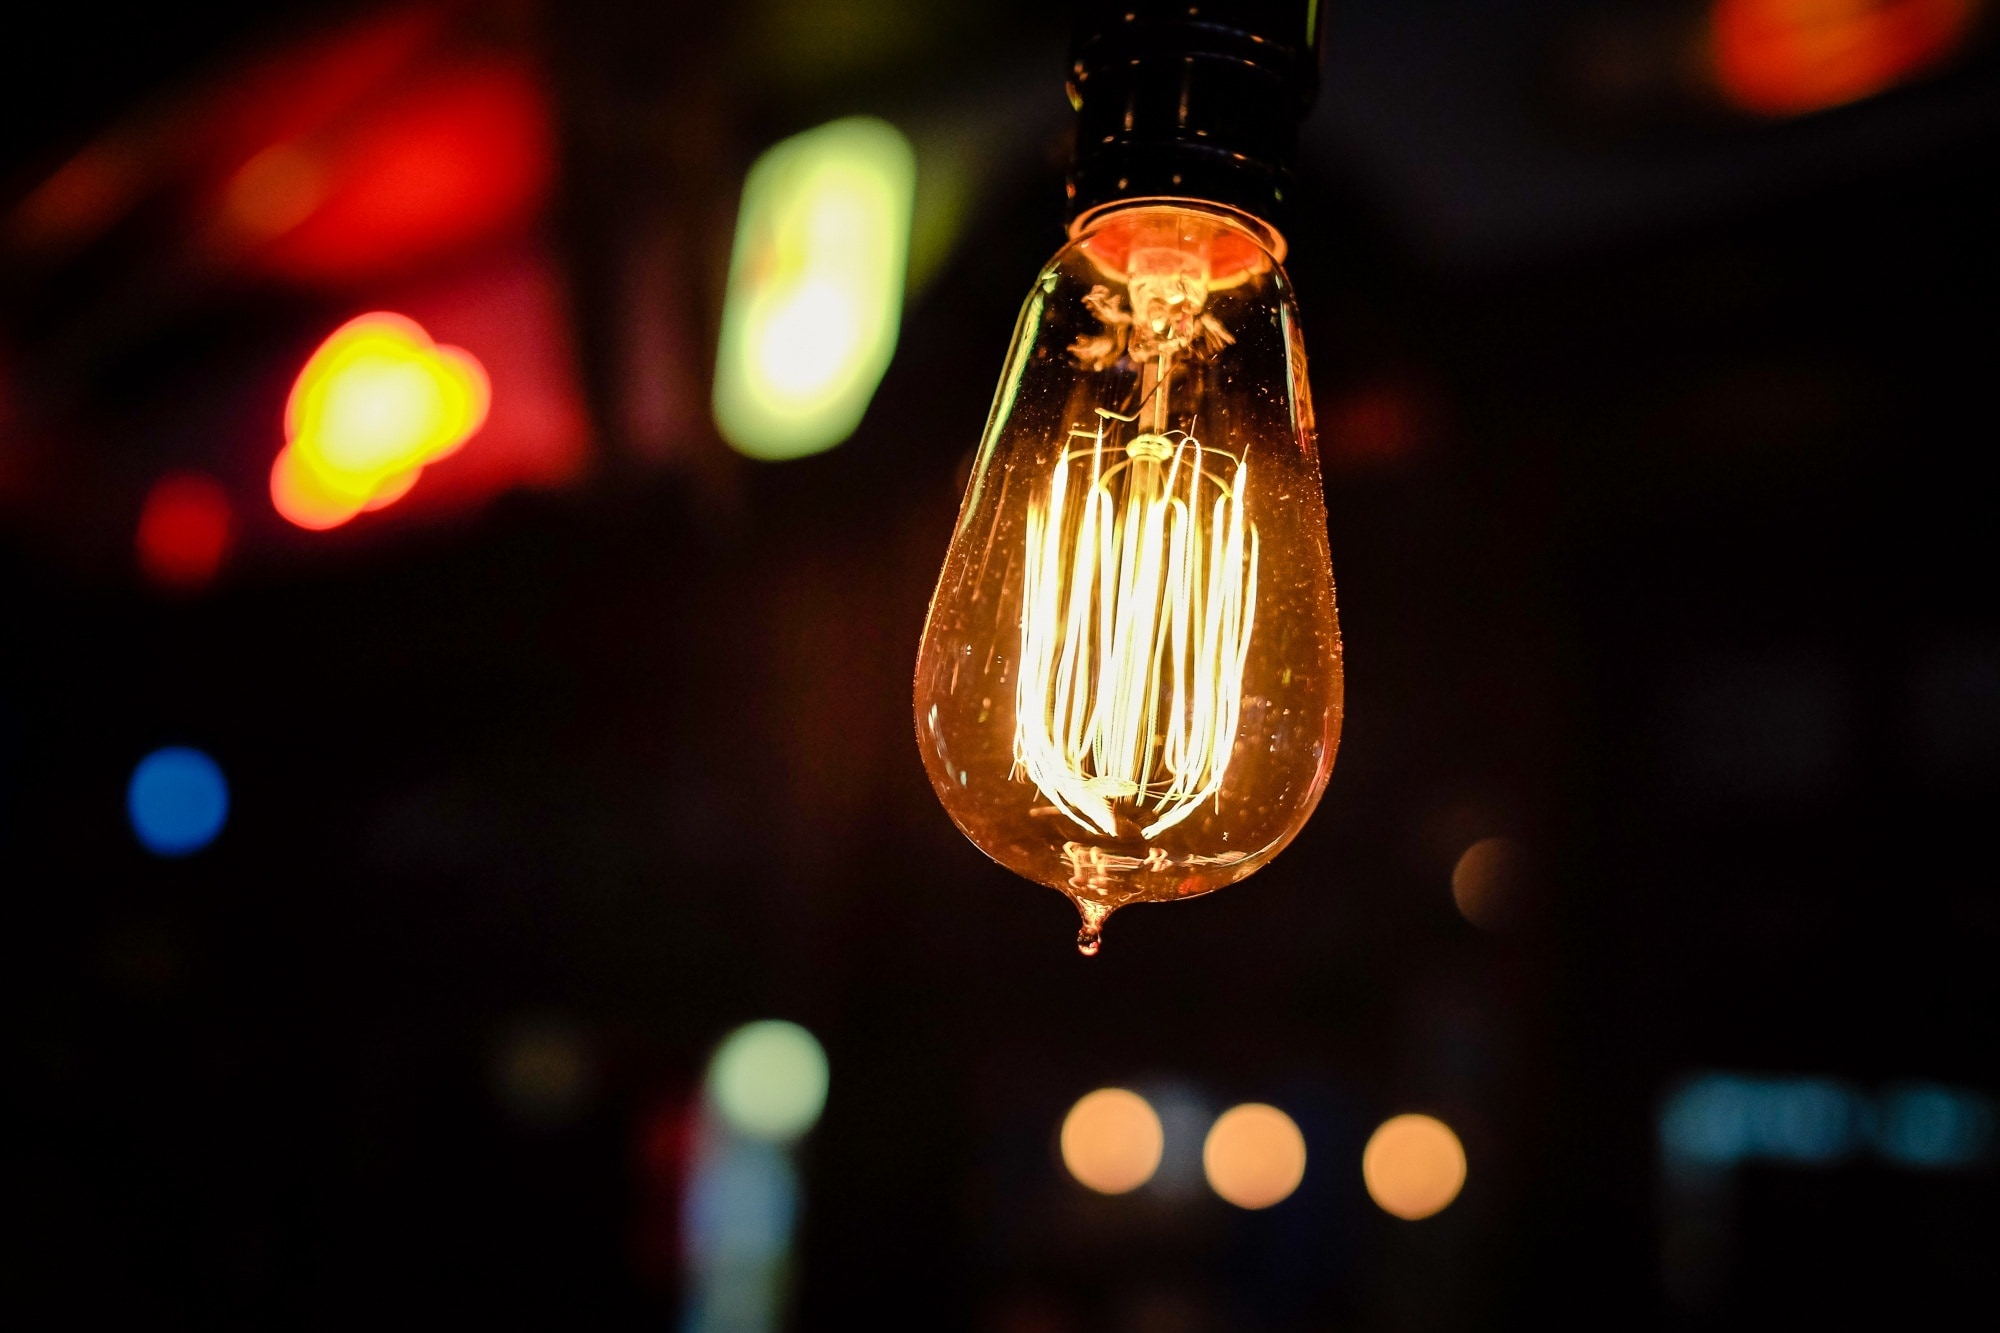 Lightbulb Lights Light Bulb Free Image Peakpx